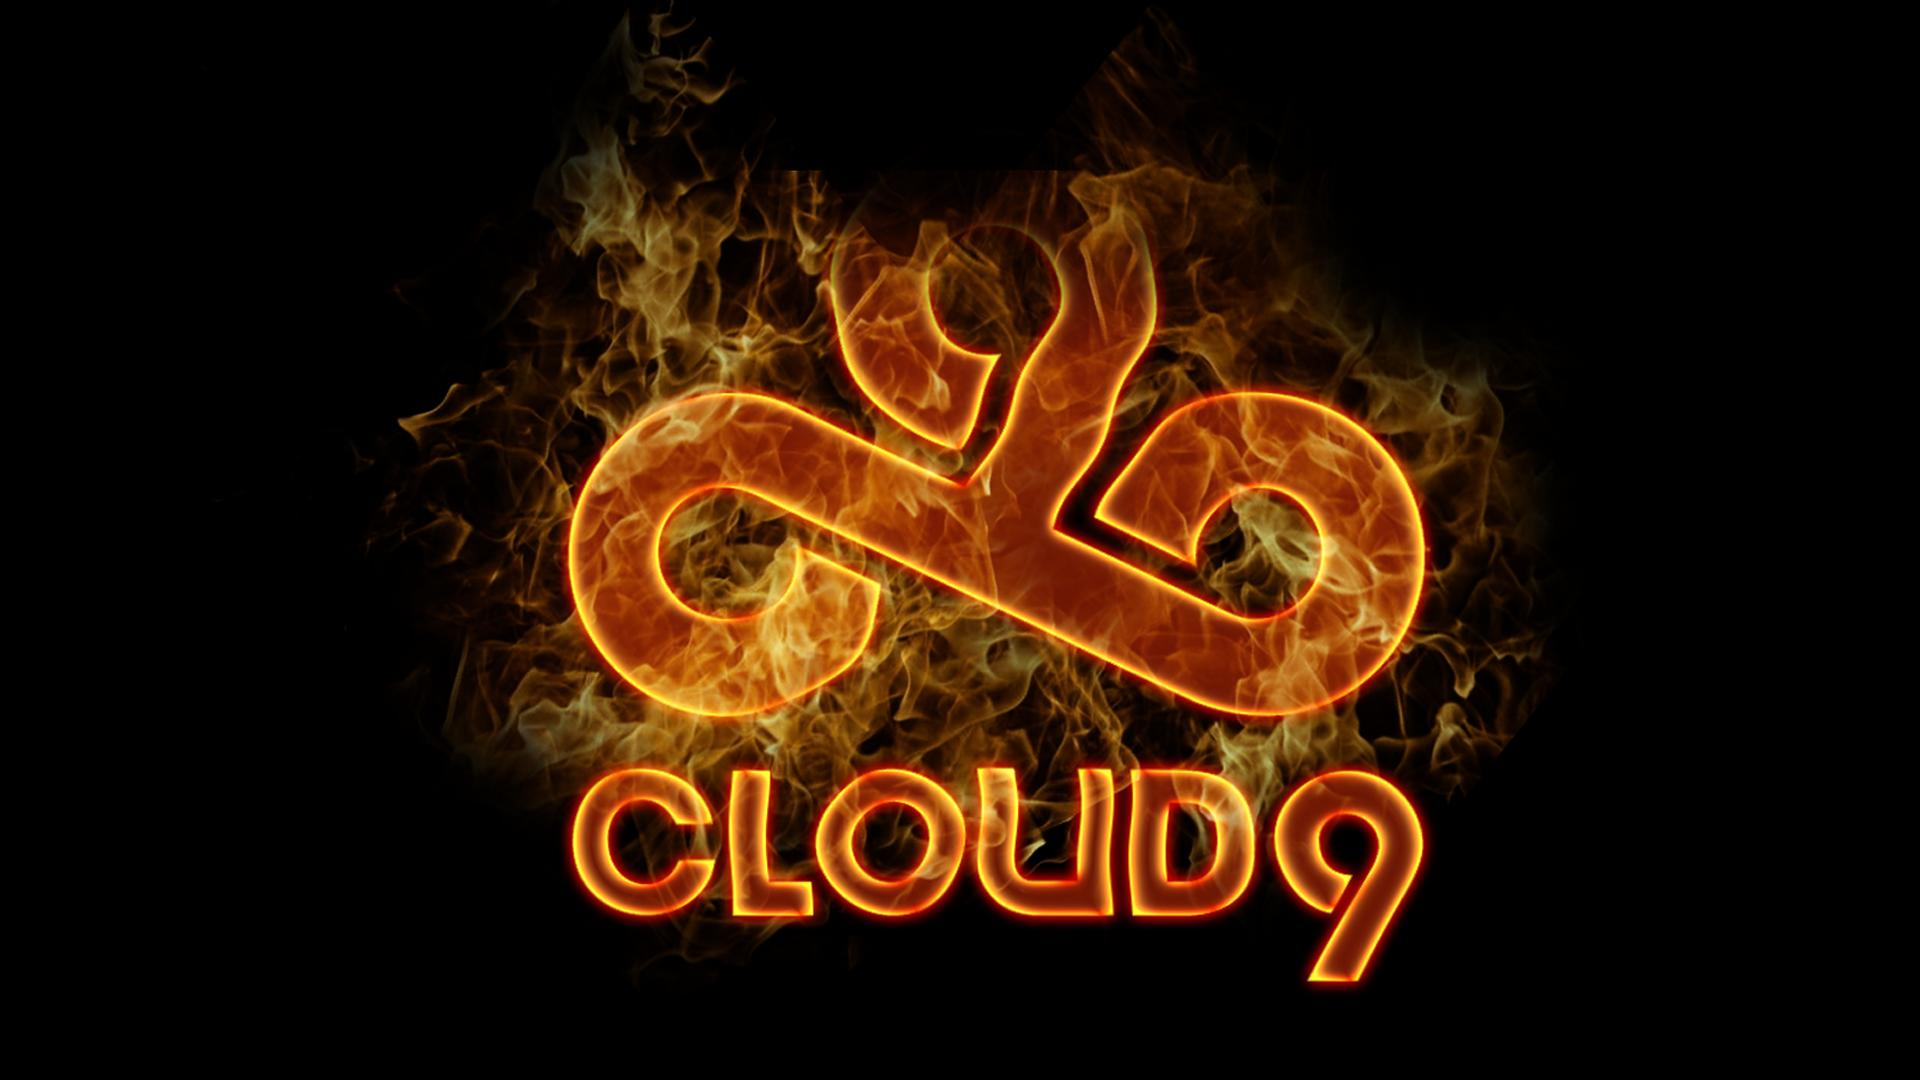 Fiery-Cloud-Background-1920x1080-Need-iPhone-S-Plus-Background-for-IPhoneSPlus-wallpaper-wp3605545